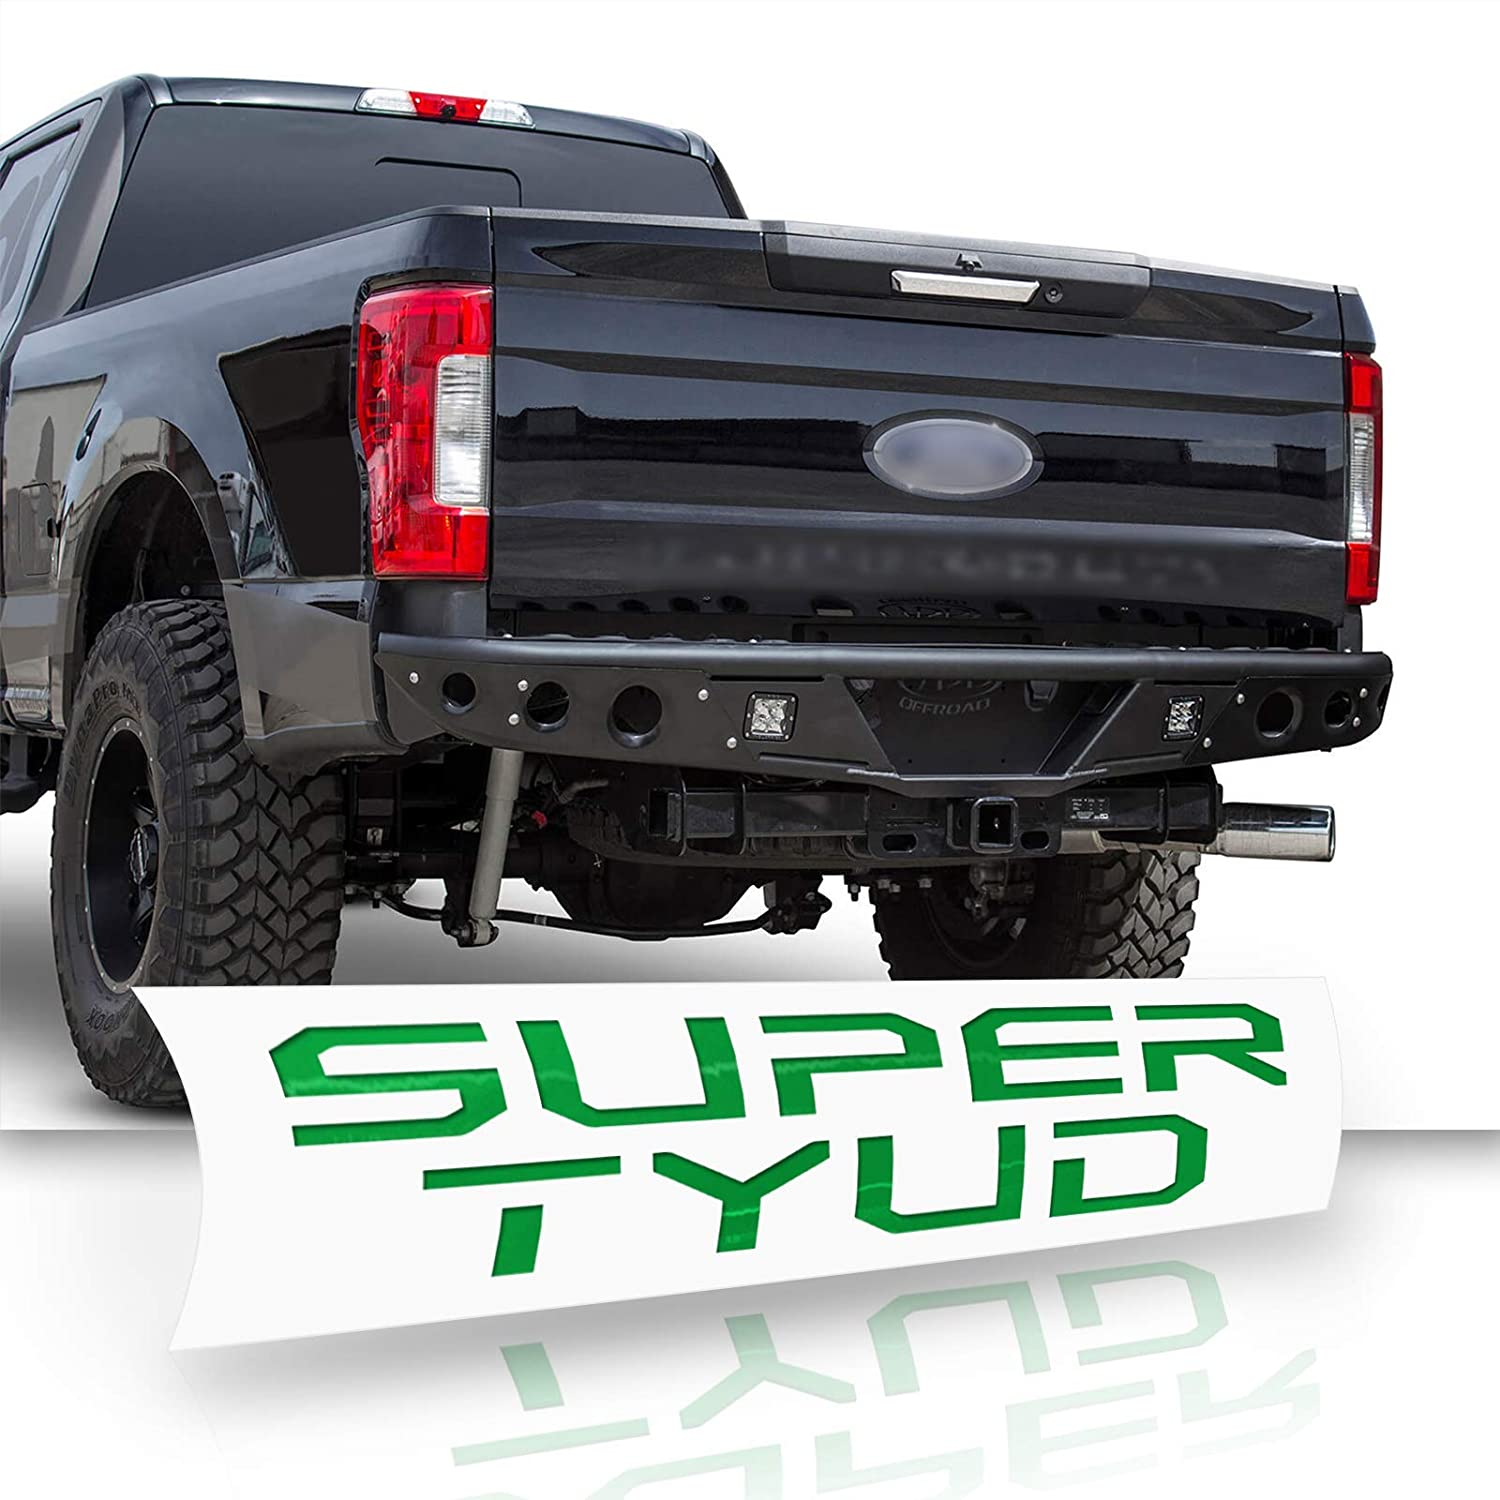 Optix Tailgate Vinyl Decal Letters Overlay Trim Wrap Inserts Sticker Compatible with /& Fits F-250 F-350 F-450 F-550 Super Duty 2017-2018 Gloss Green